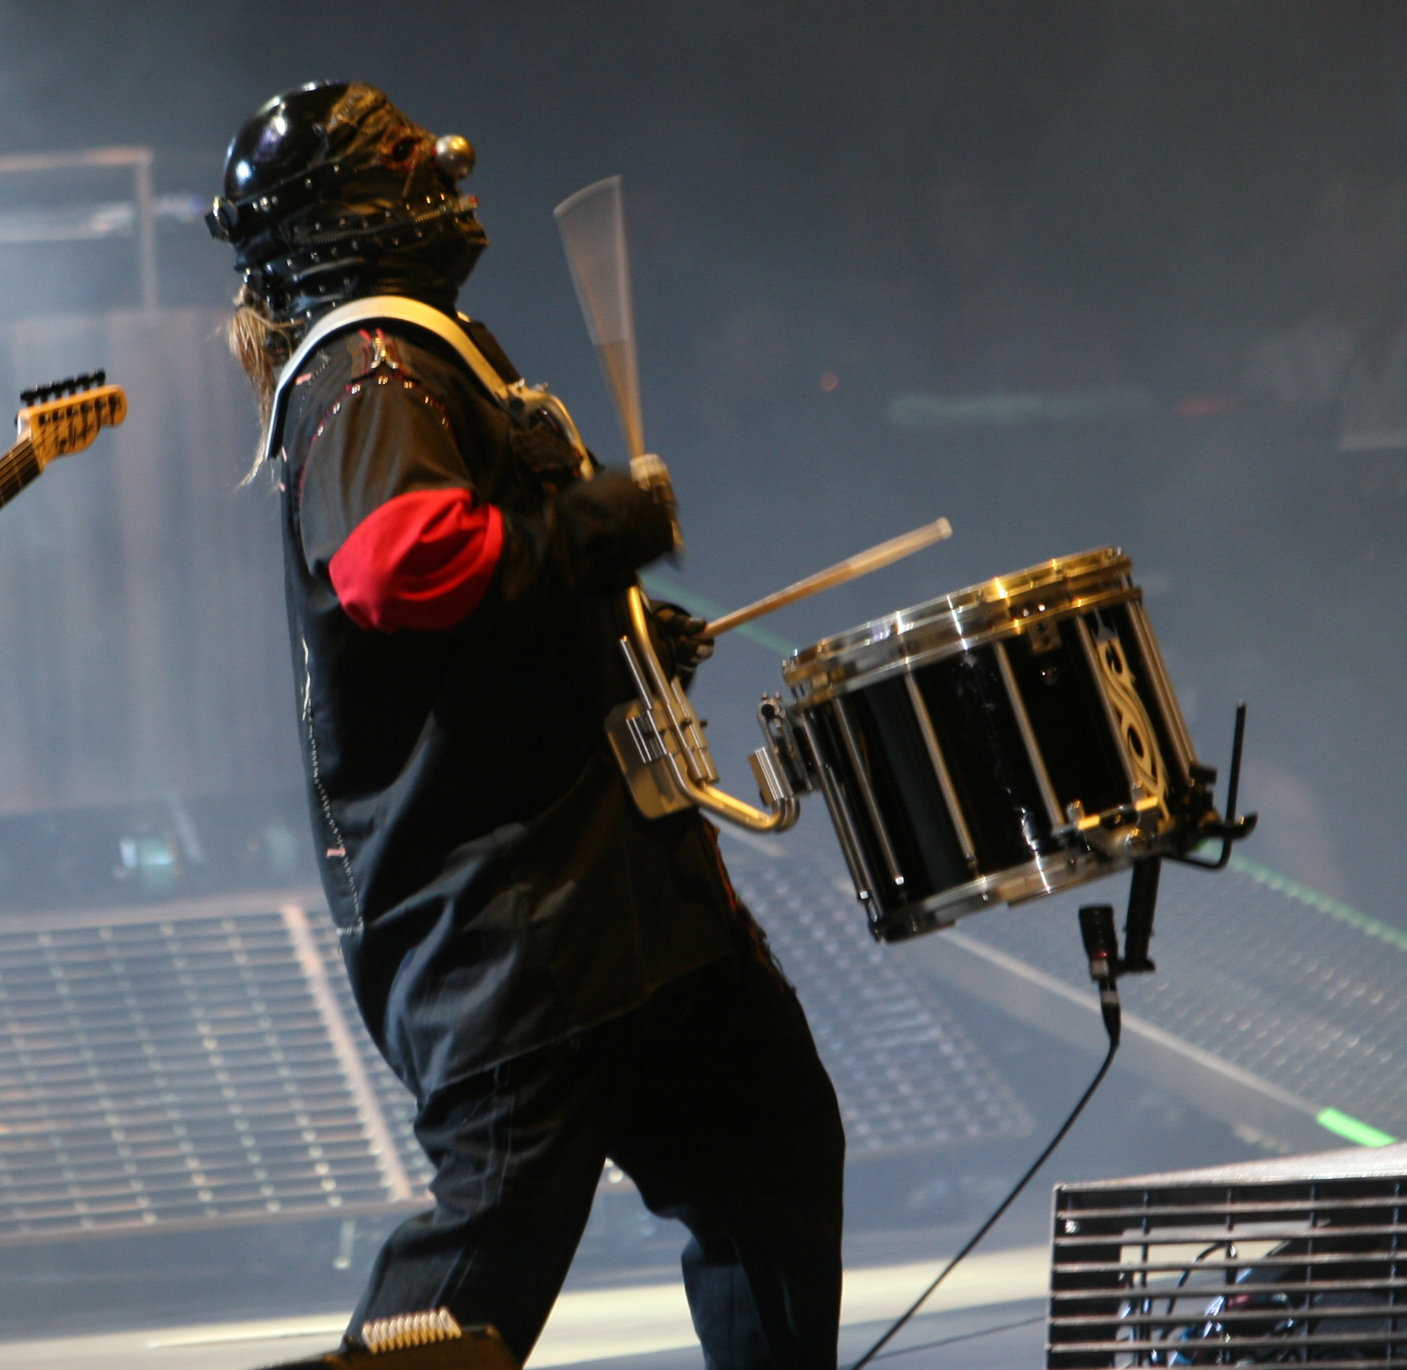 http://en.academic.ru/pictures/enwiki/83/Shawn_Crahan_at_Mayhem.jpg